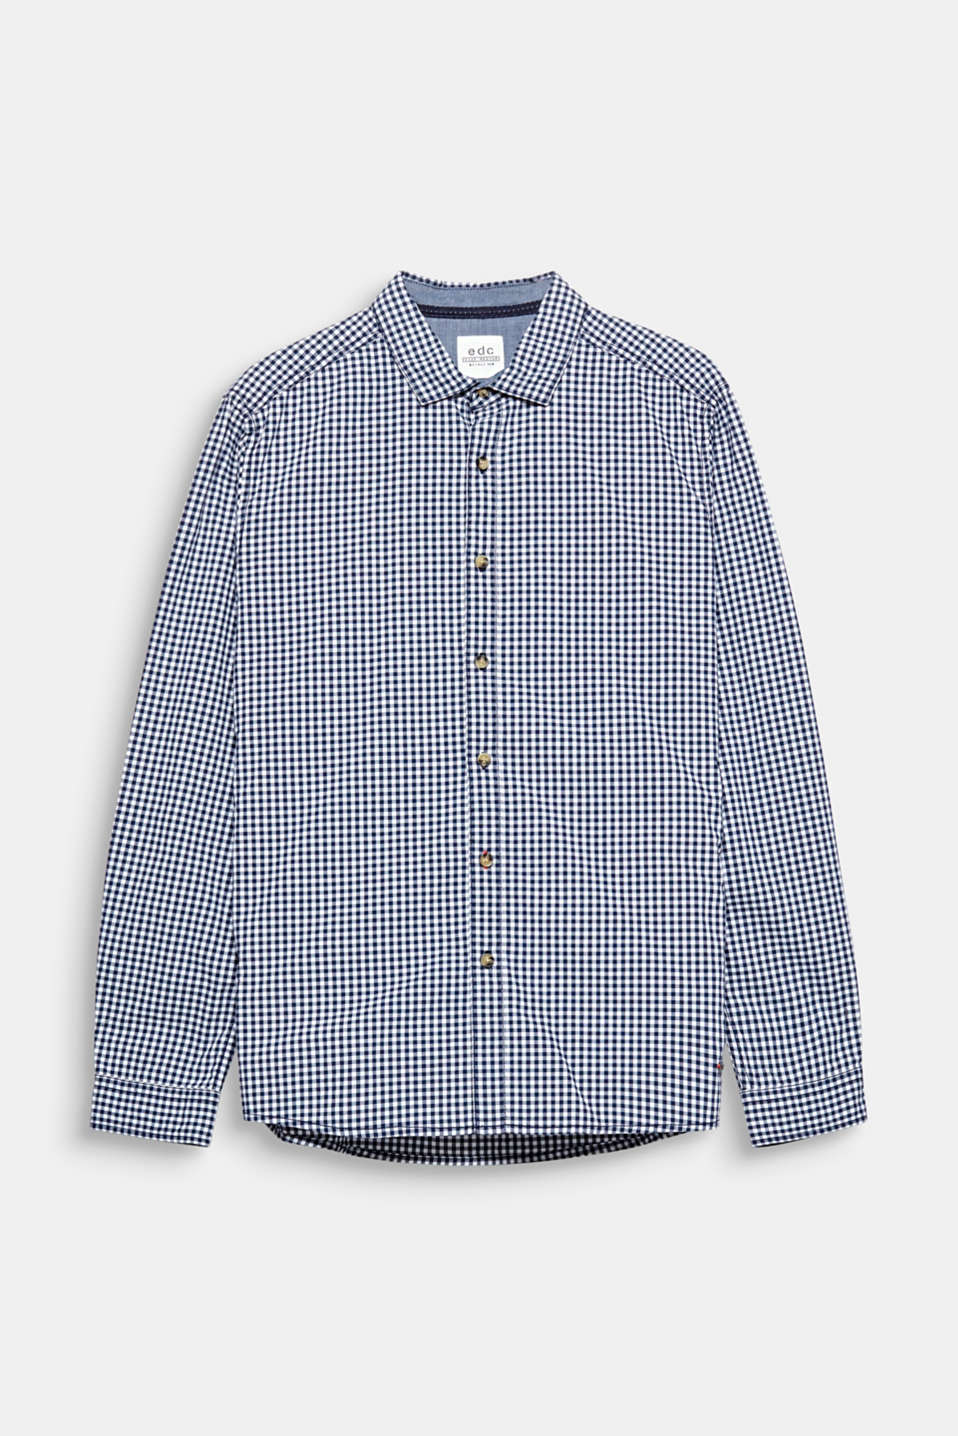 Your perfect basic shirt for a relaxed daily look - with a classic Gingham check made of pure cotton.